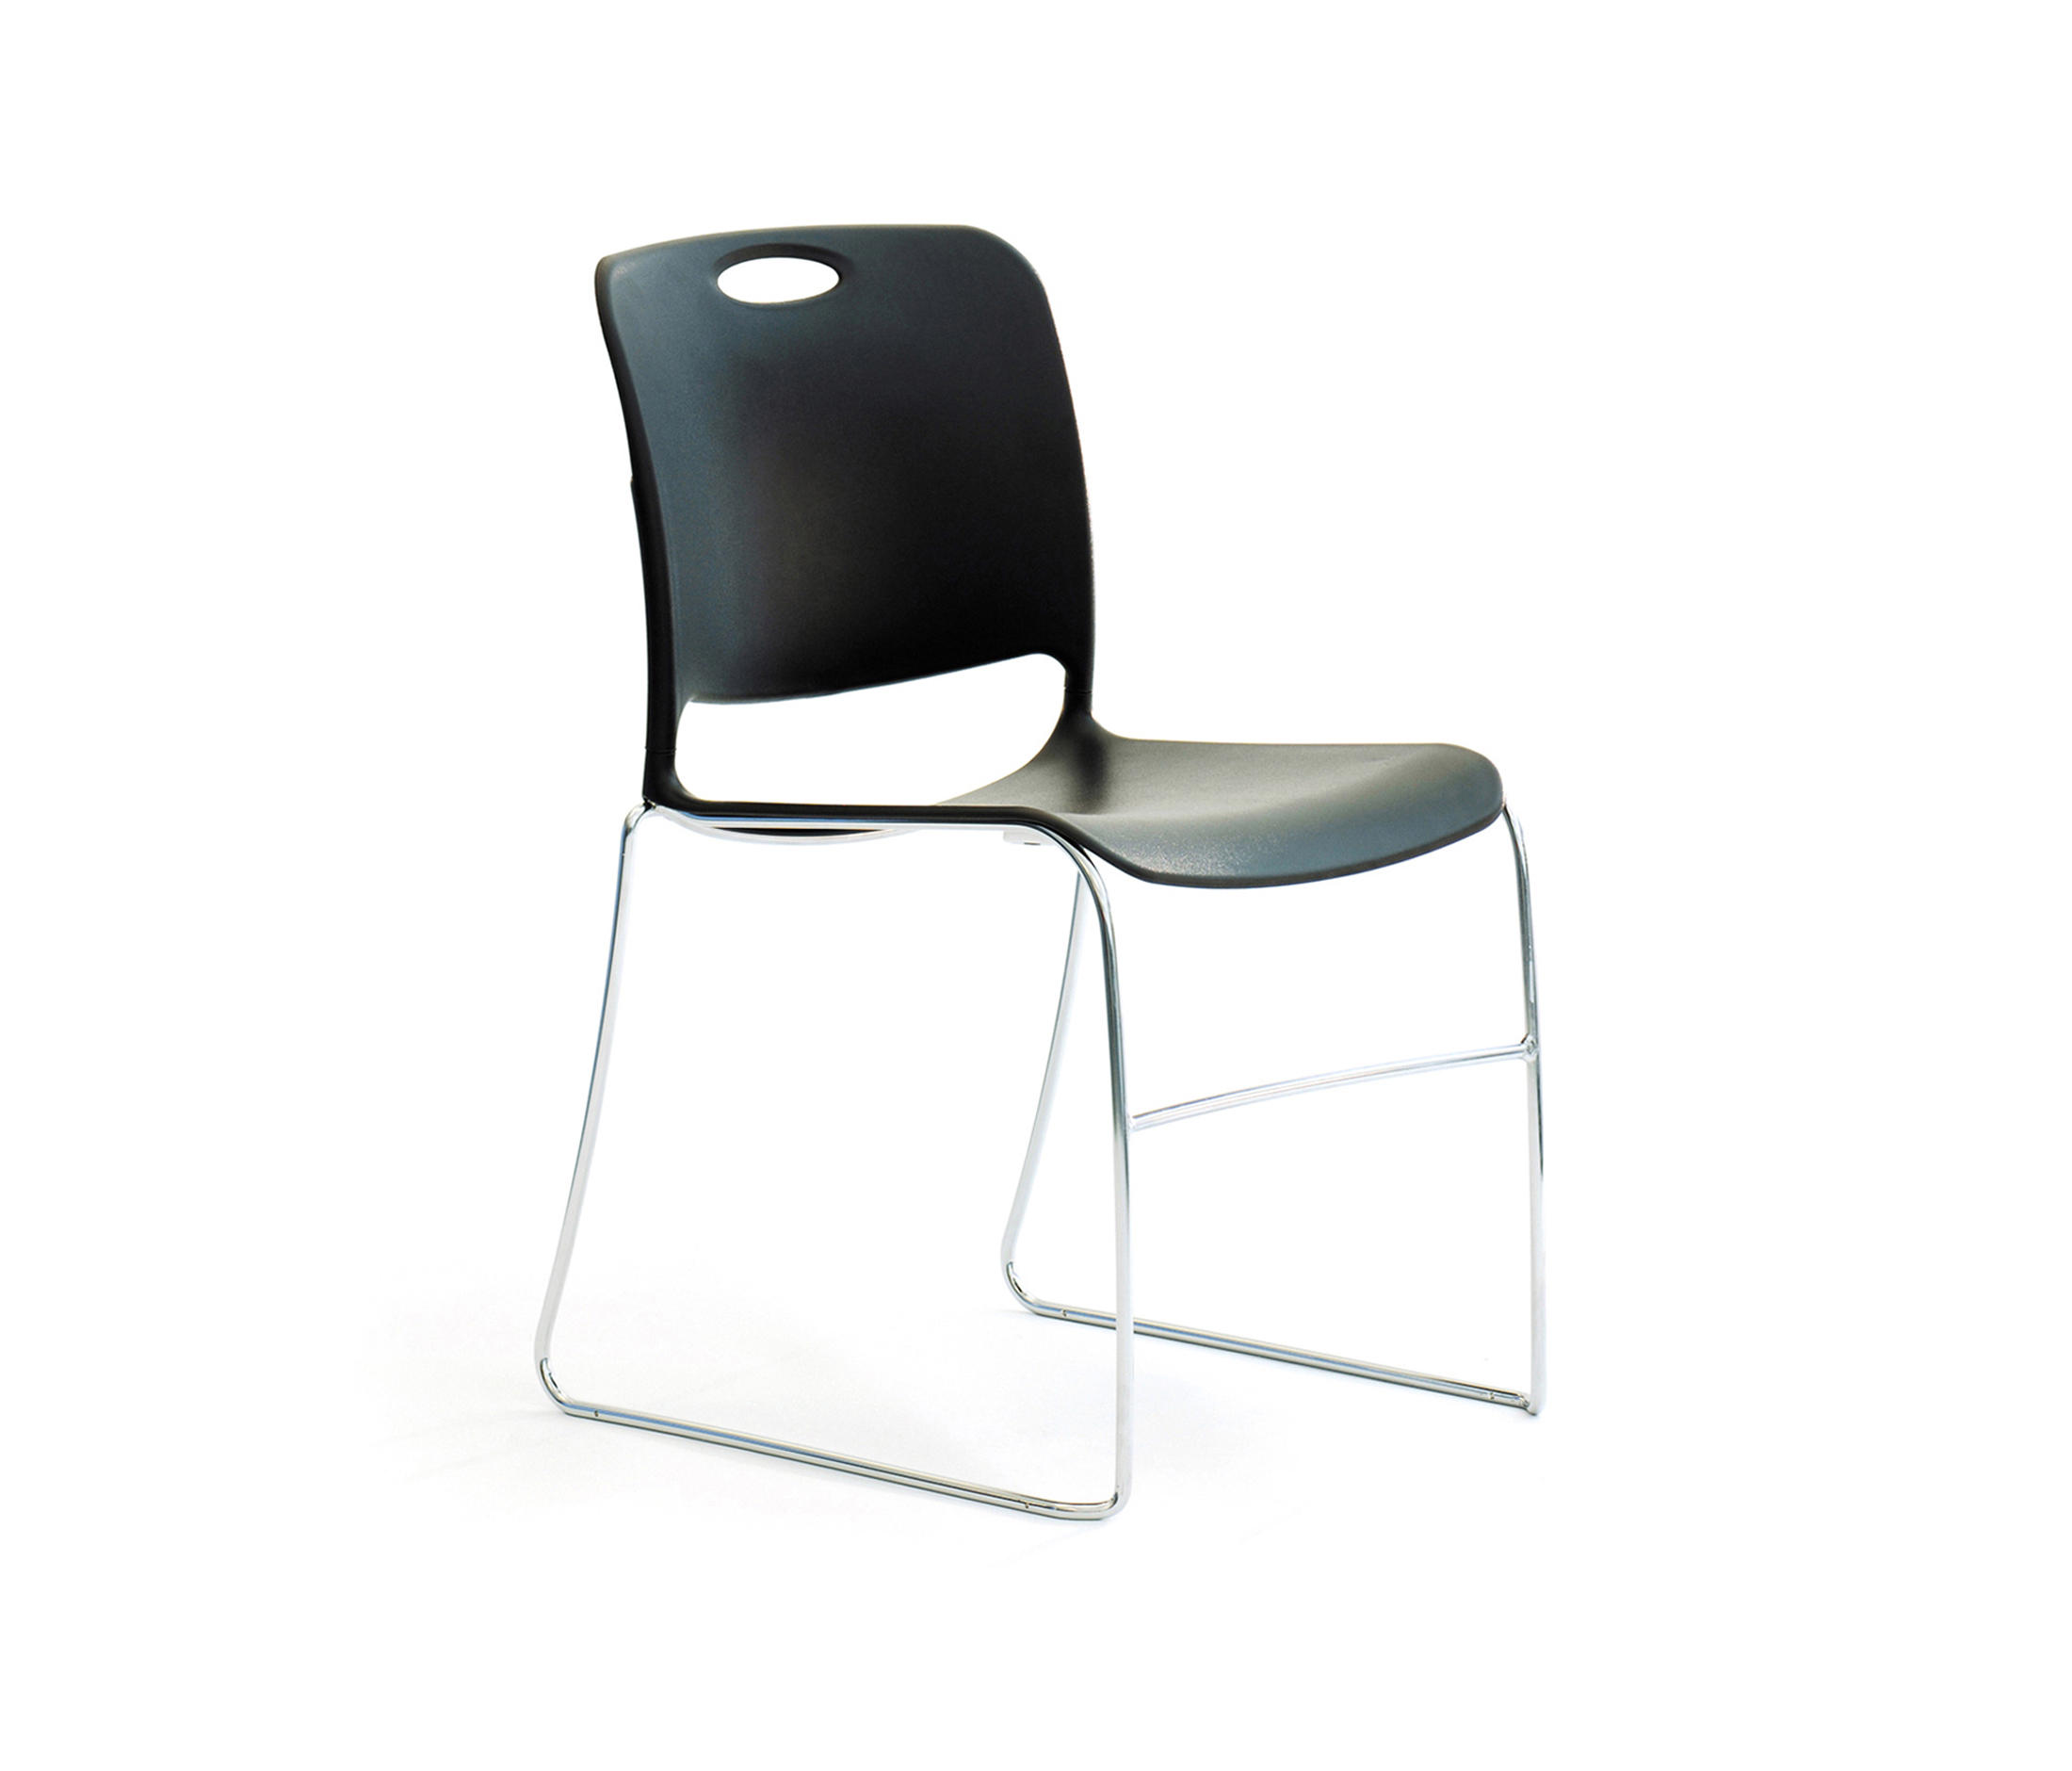 Ki Chairs Maestro Stack Chair Chairs From Ki Architonic